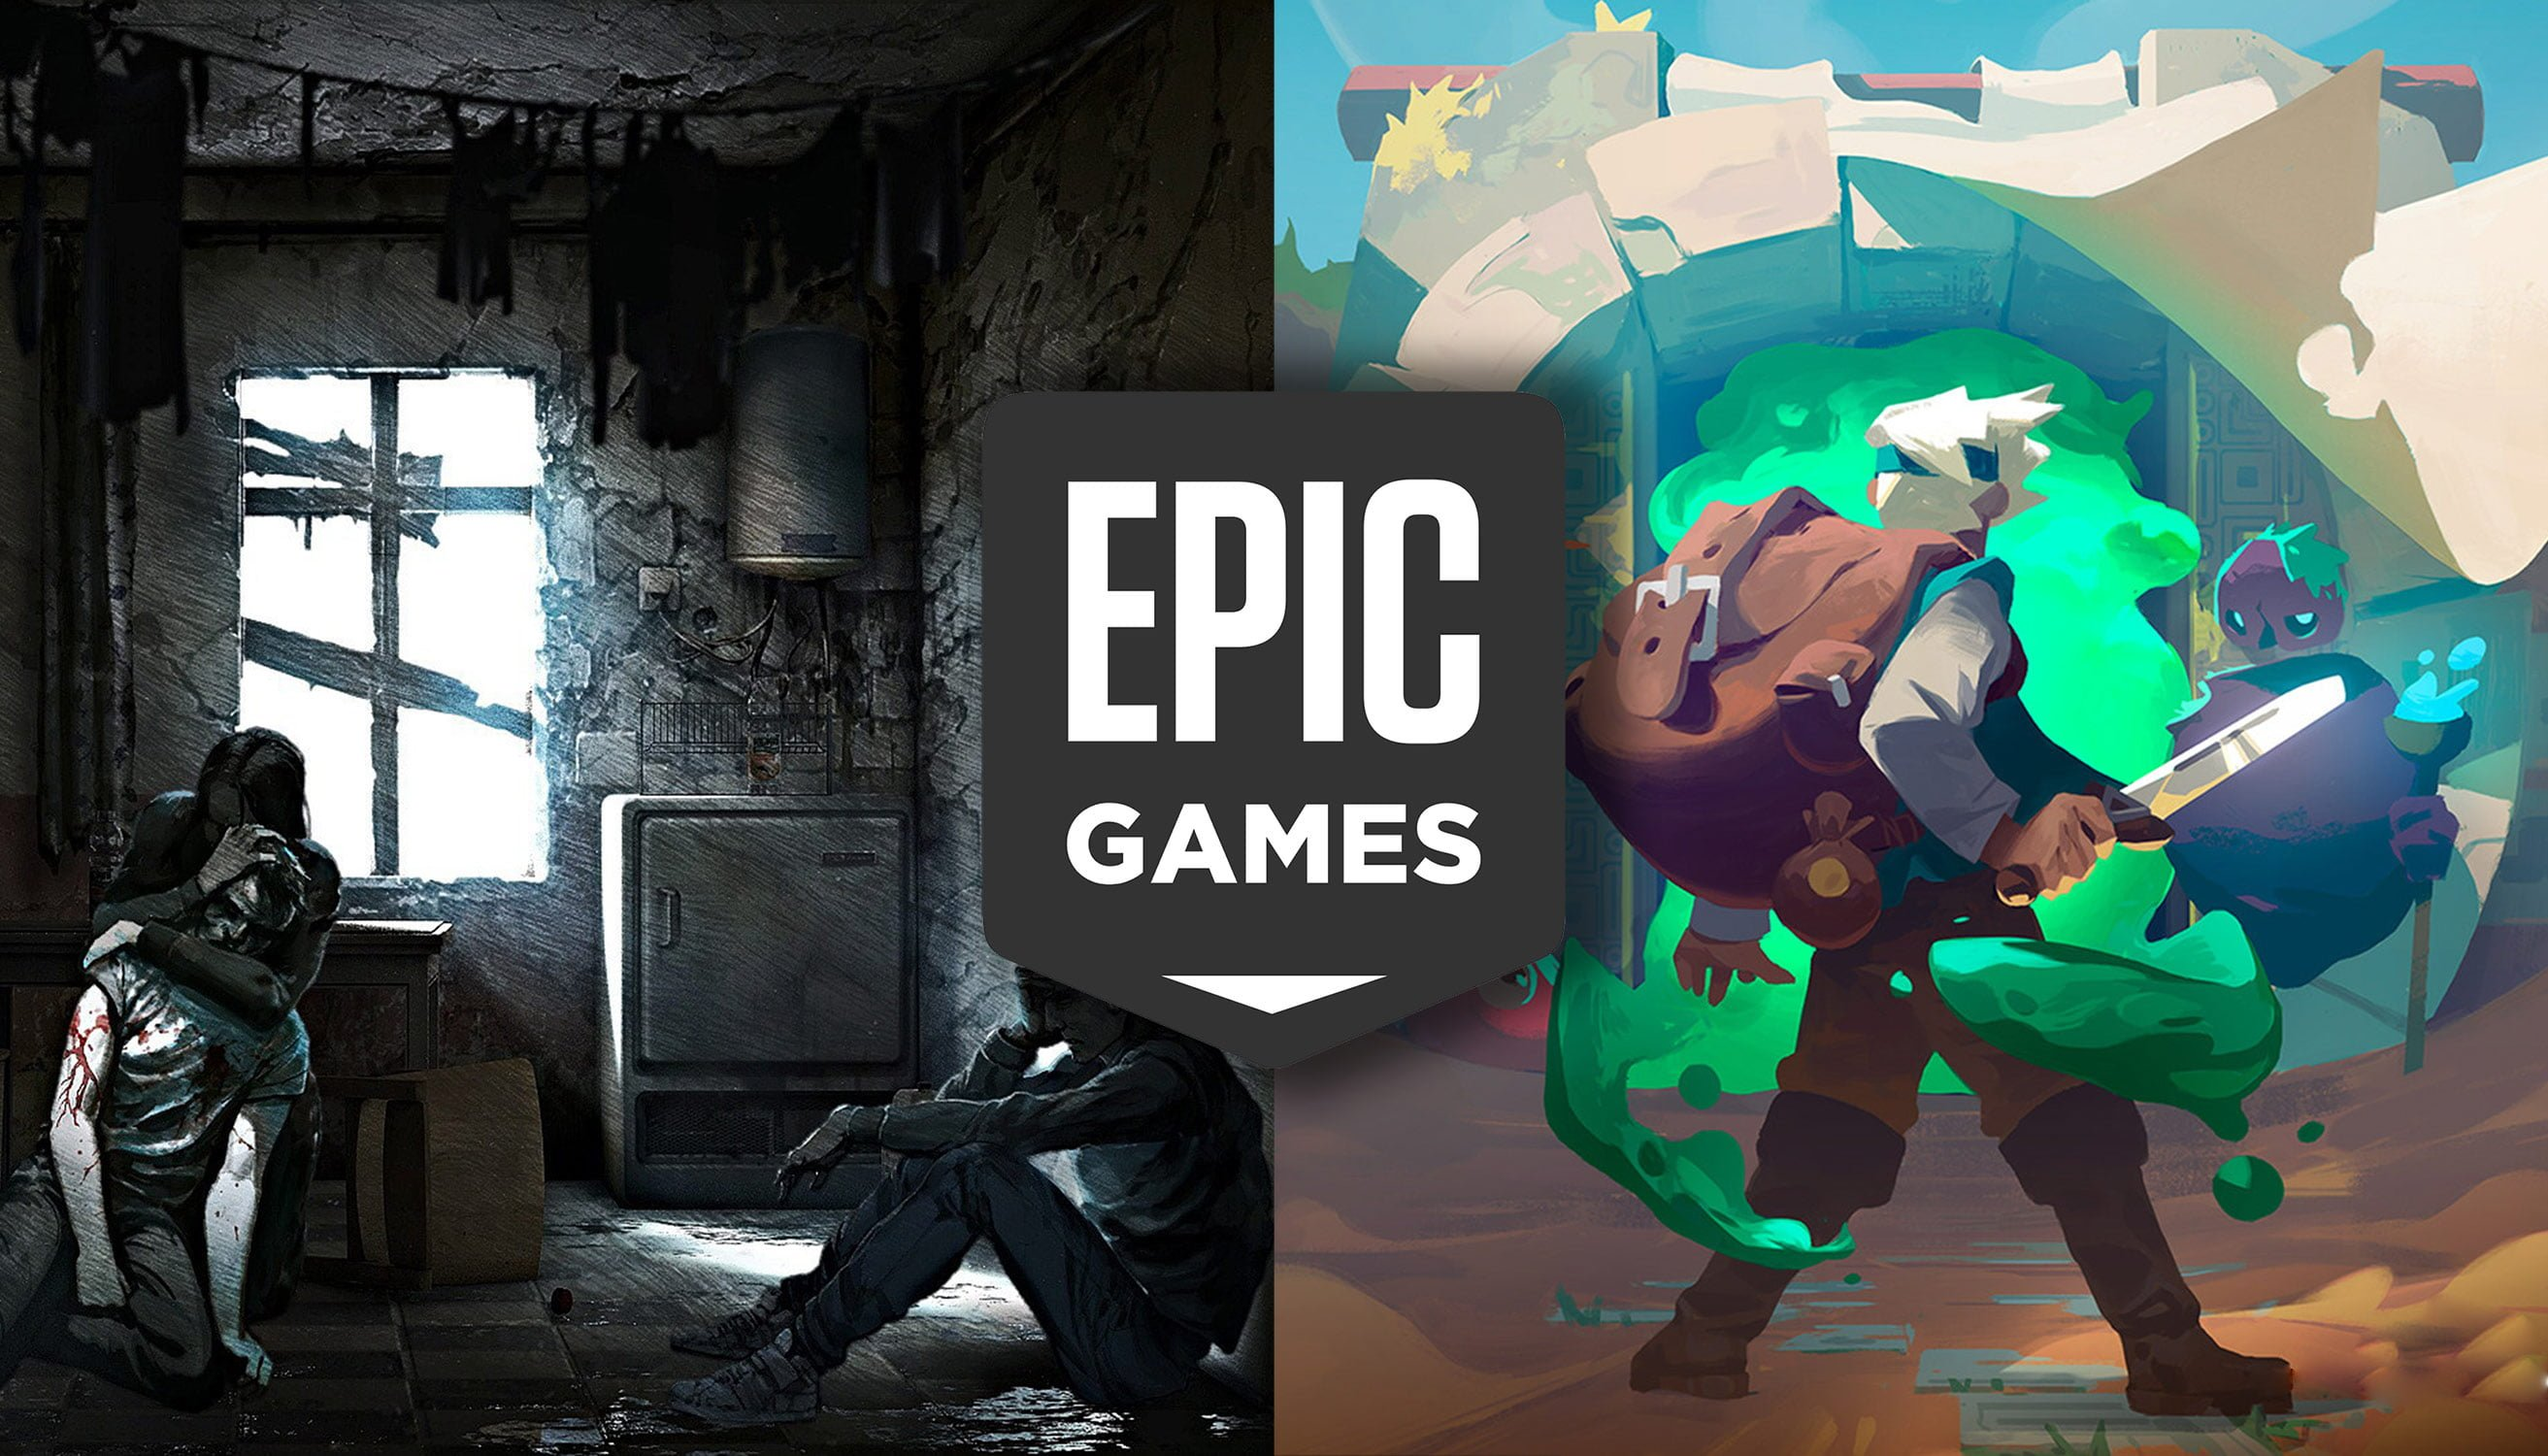 Prawdziwa bomba od Epic Games - Moonlighter i This War of Mine za darmo! 20